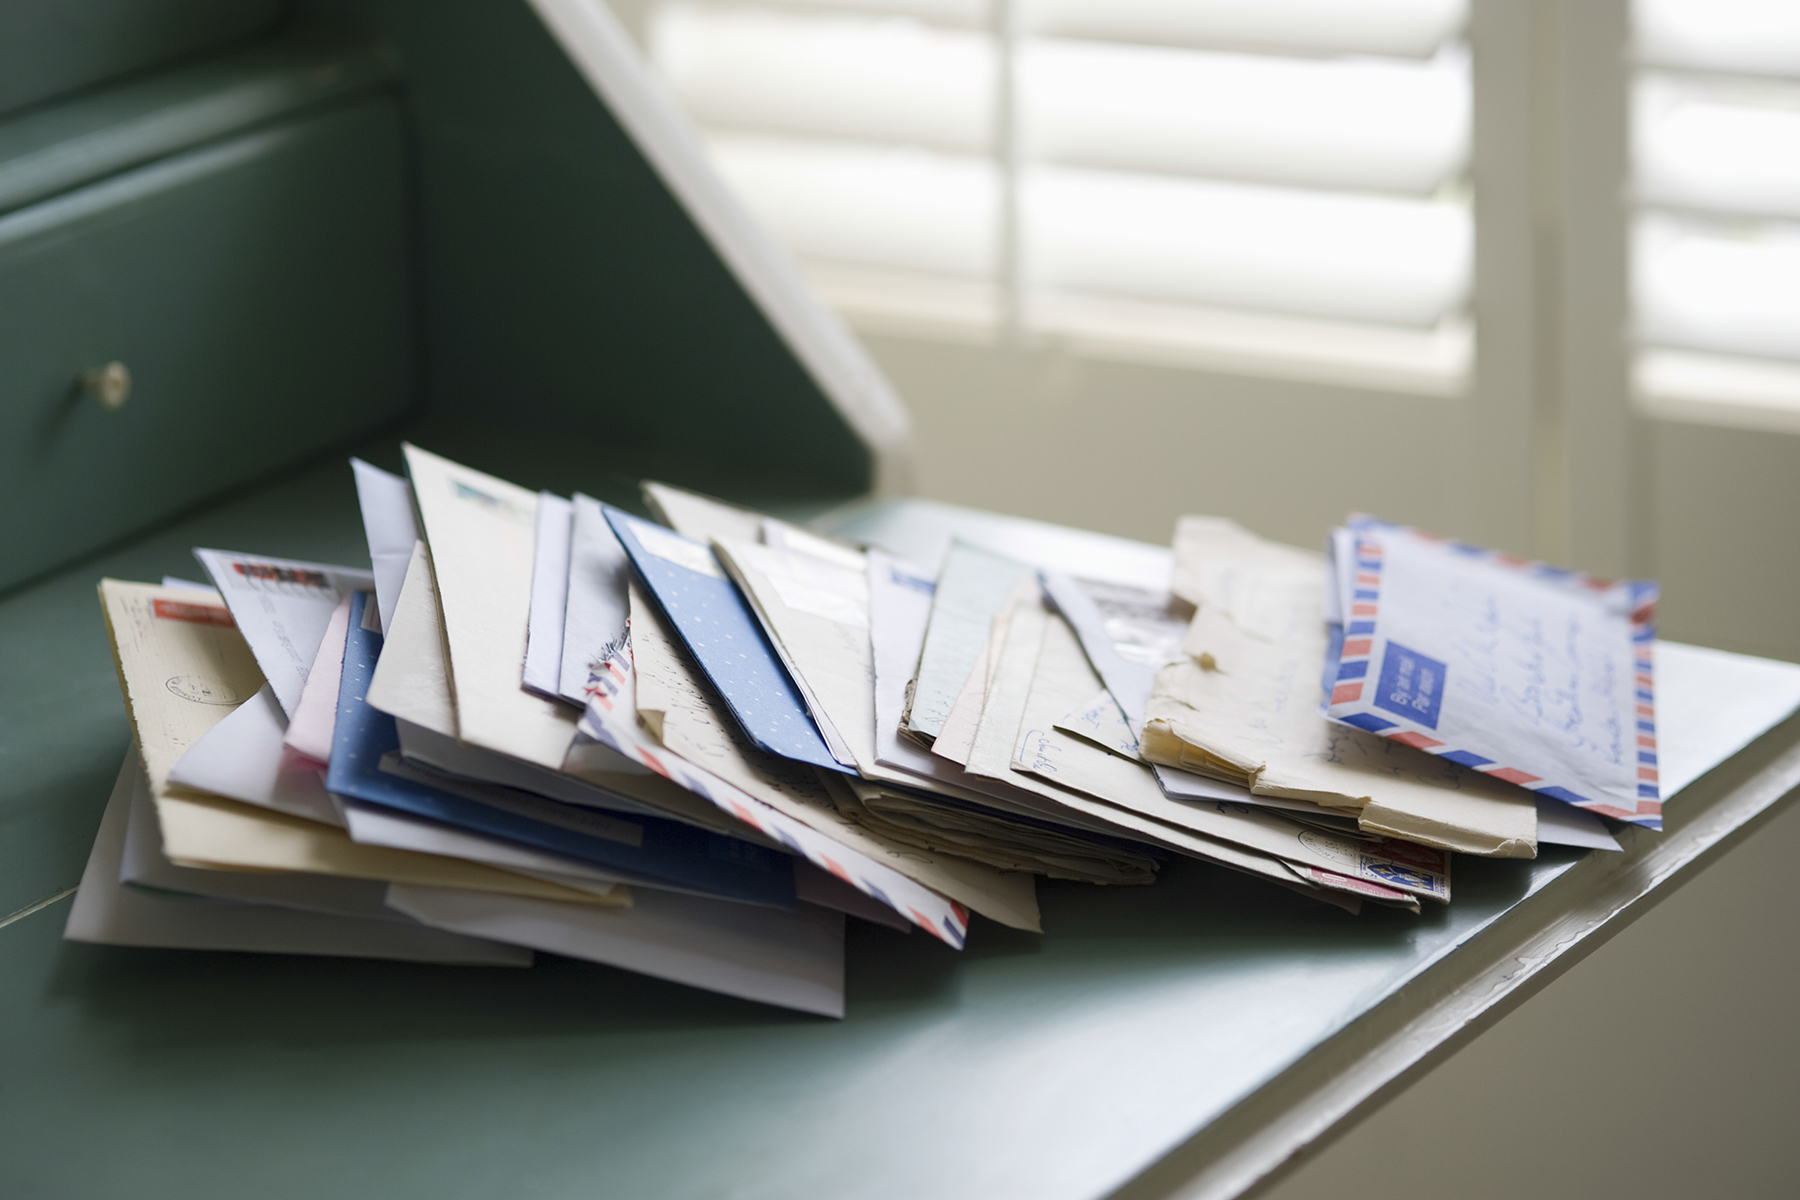 Moving out checklist: forward your mail